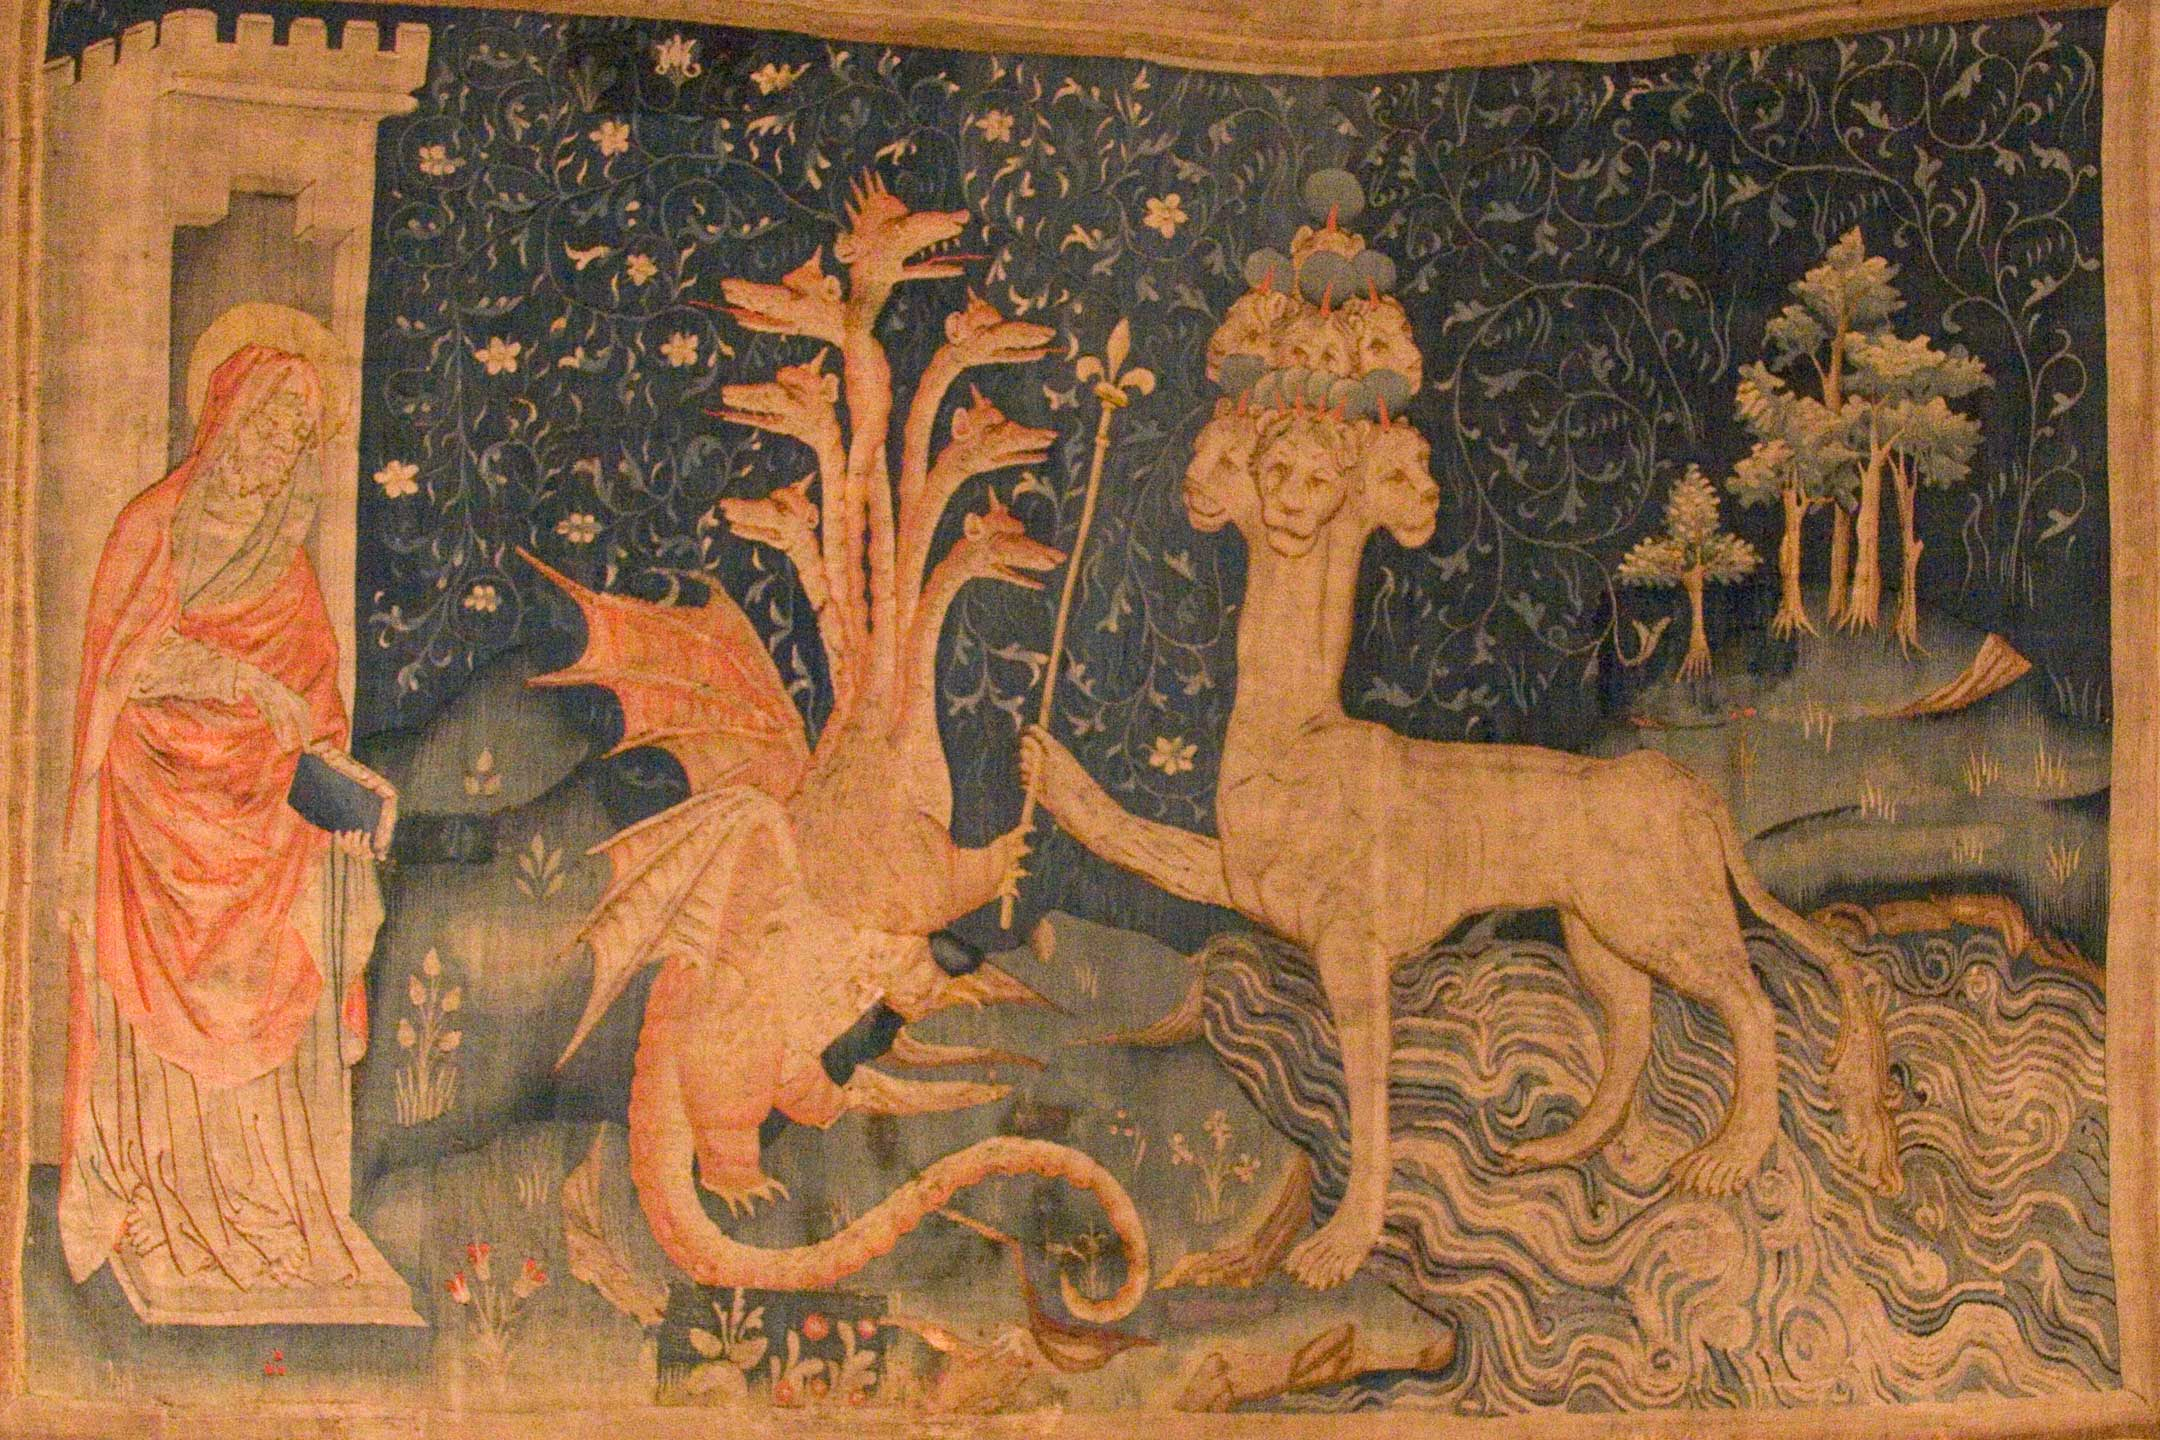 黙示録の獣、赤い龍 / The Beast of the Sea (Tapestry of the Apocalypse) - Wikipediaより